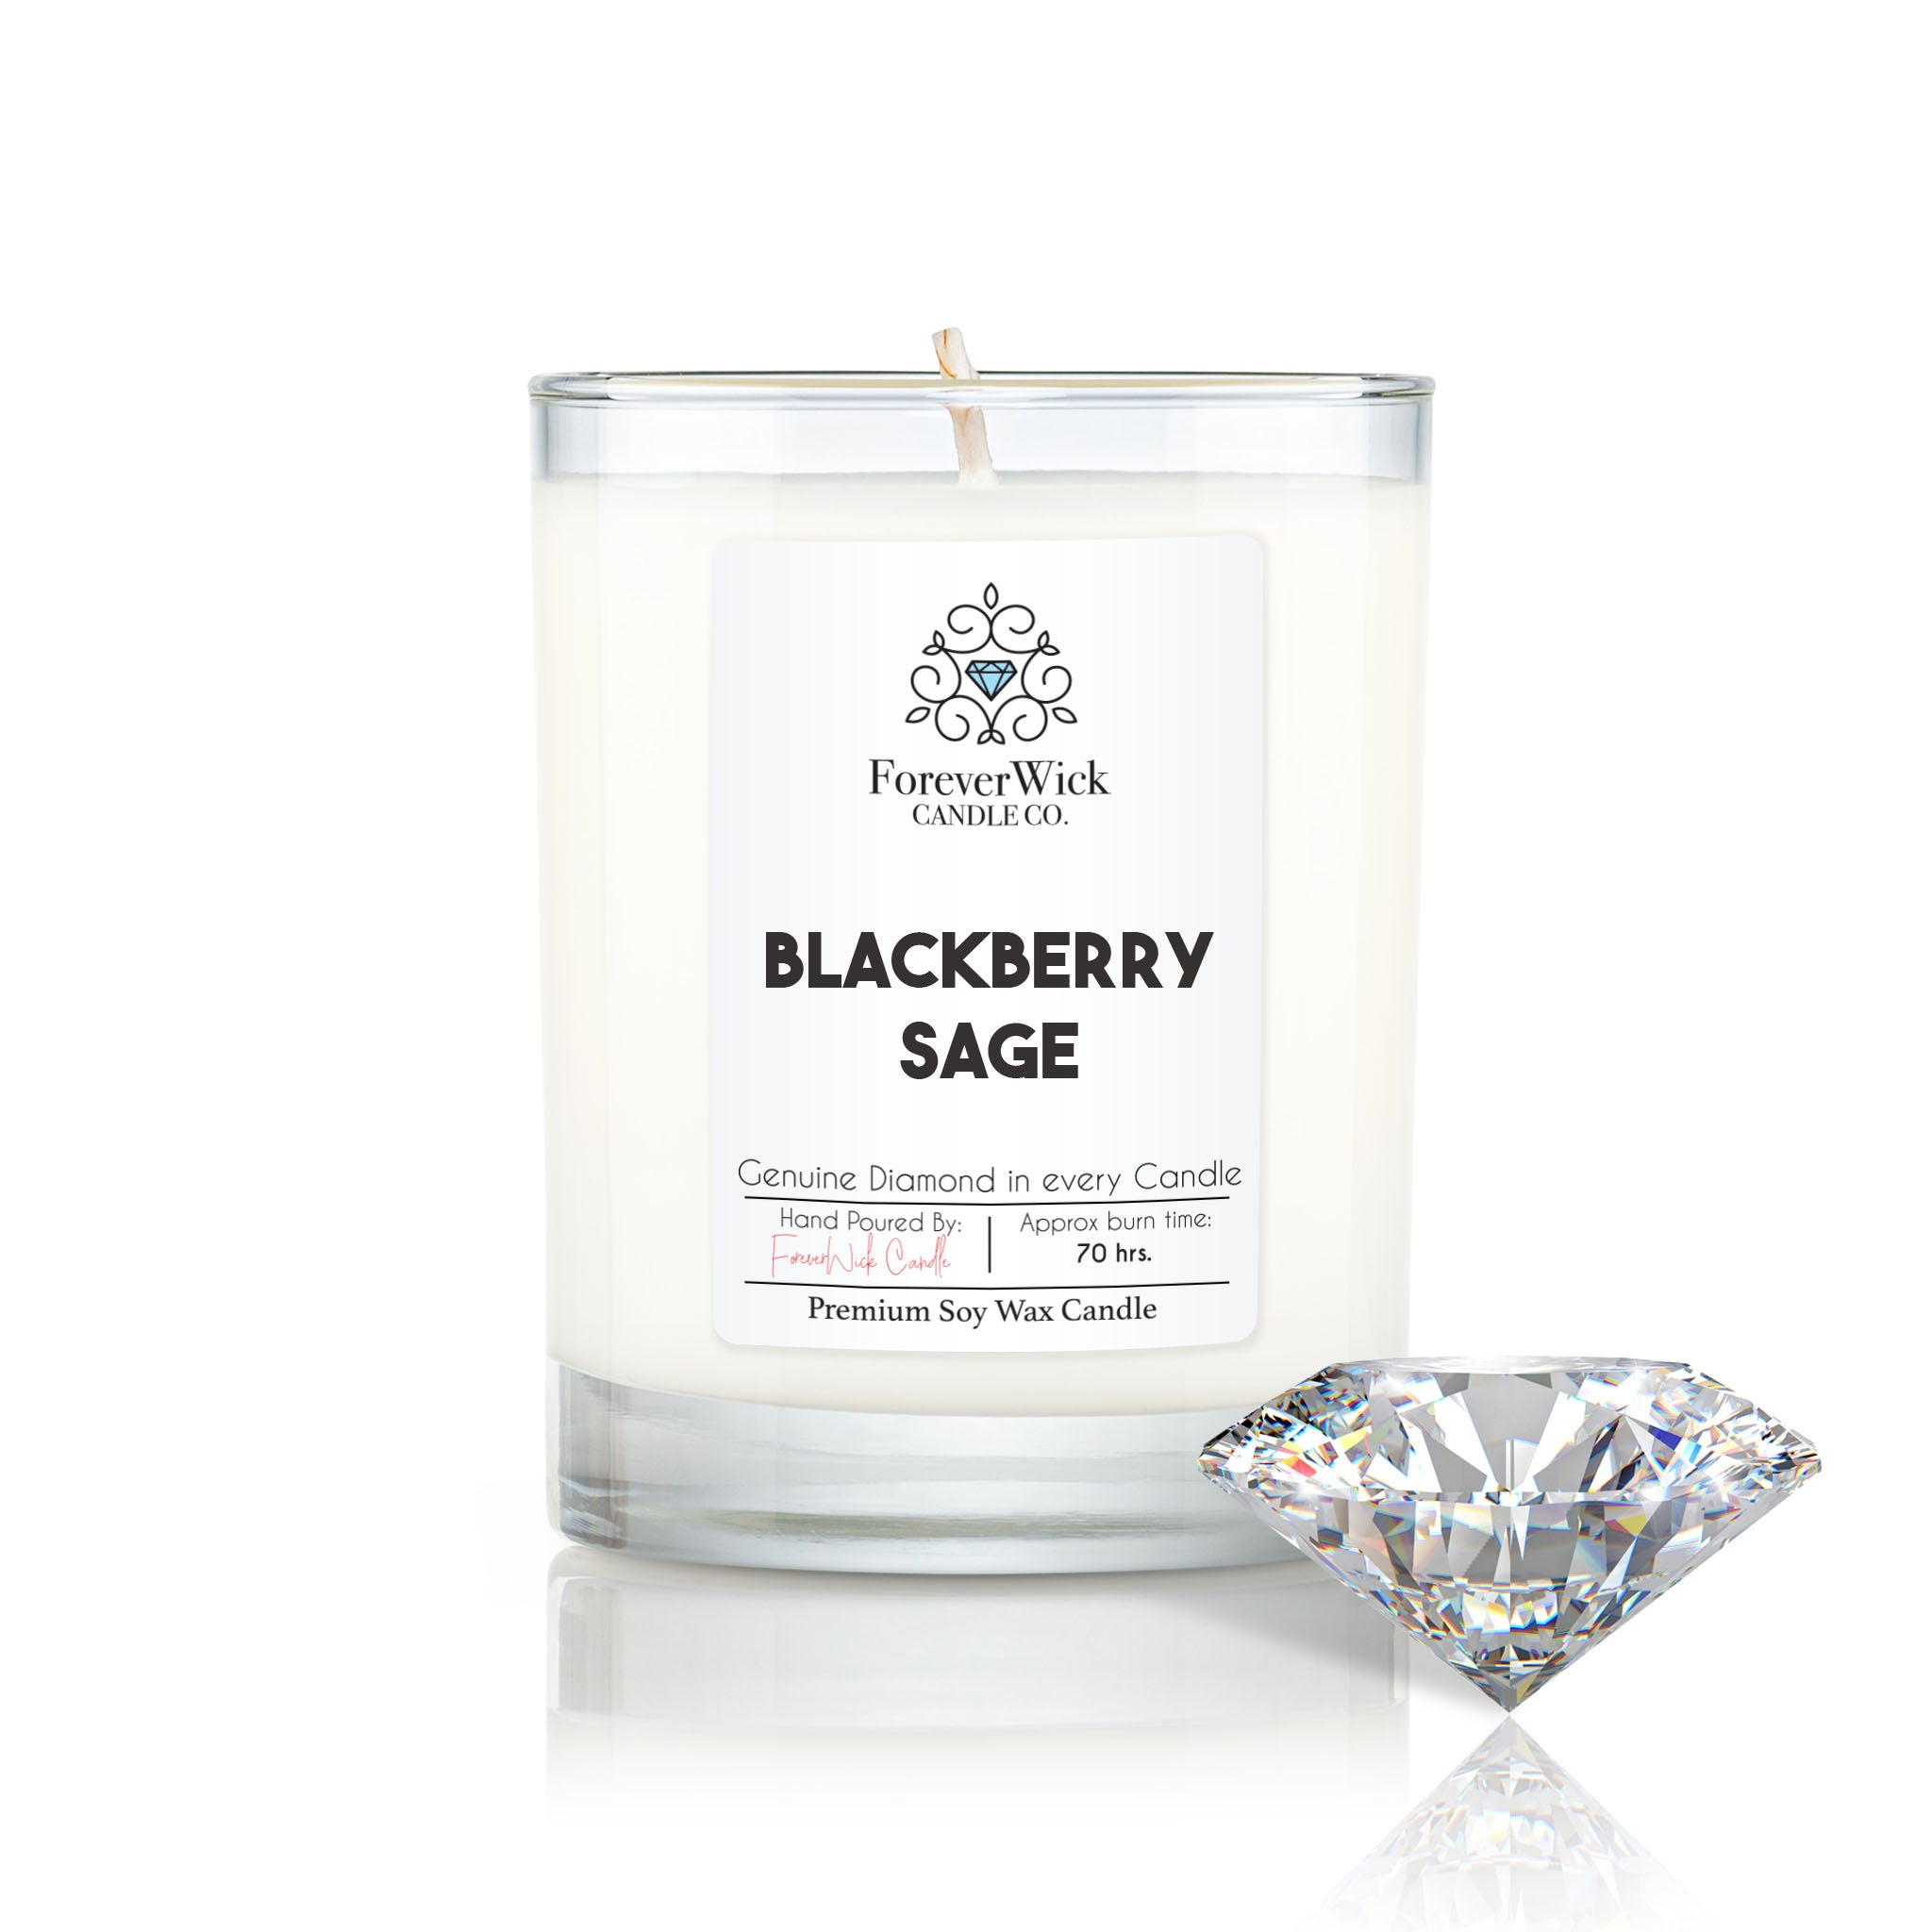 Blackberry Sage Diamond Candle